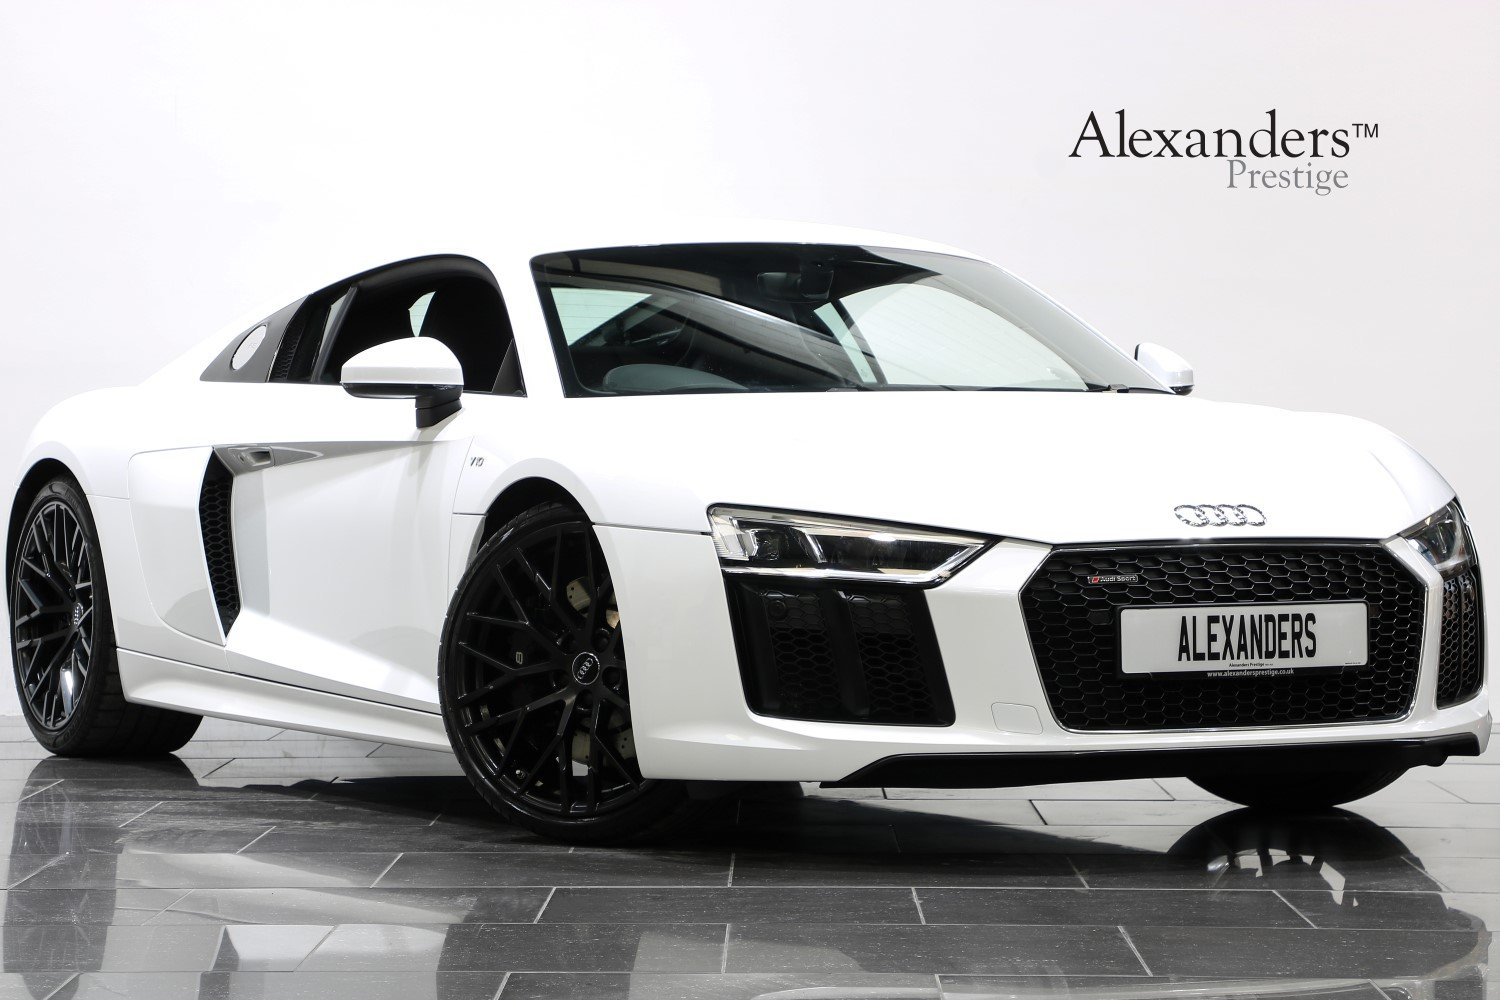 2018 68 AUDI R8 5.2 V10 RWS S TRONIC For Sale (picture 1 of 6)